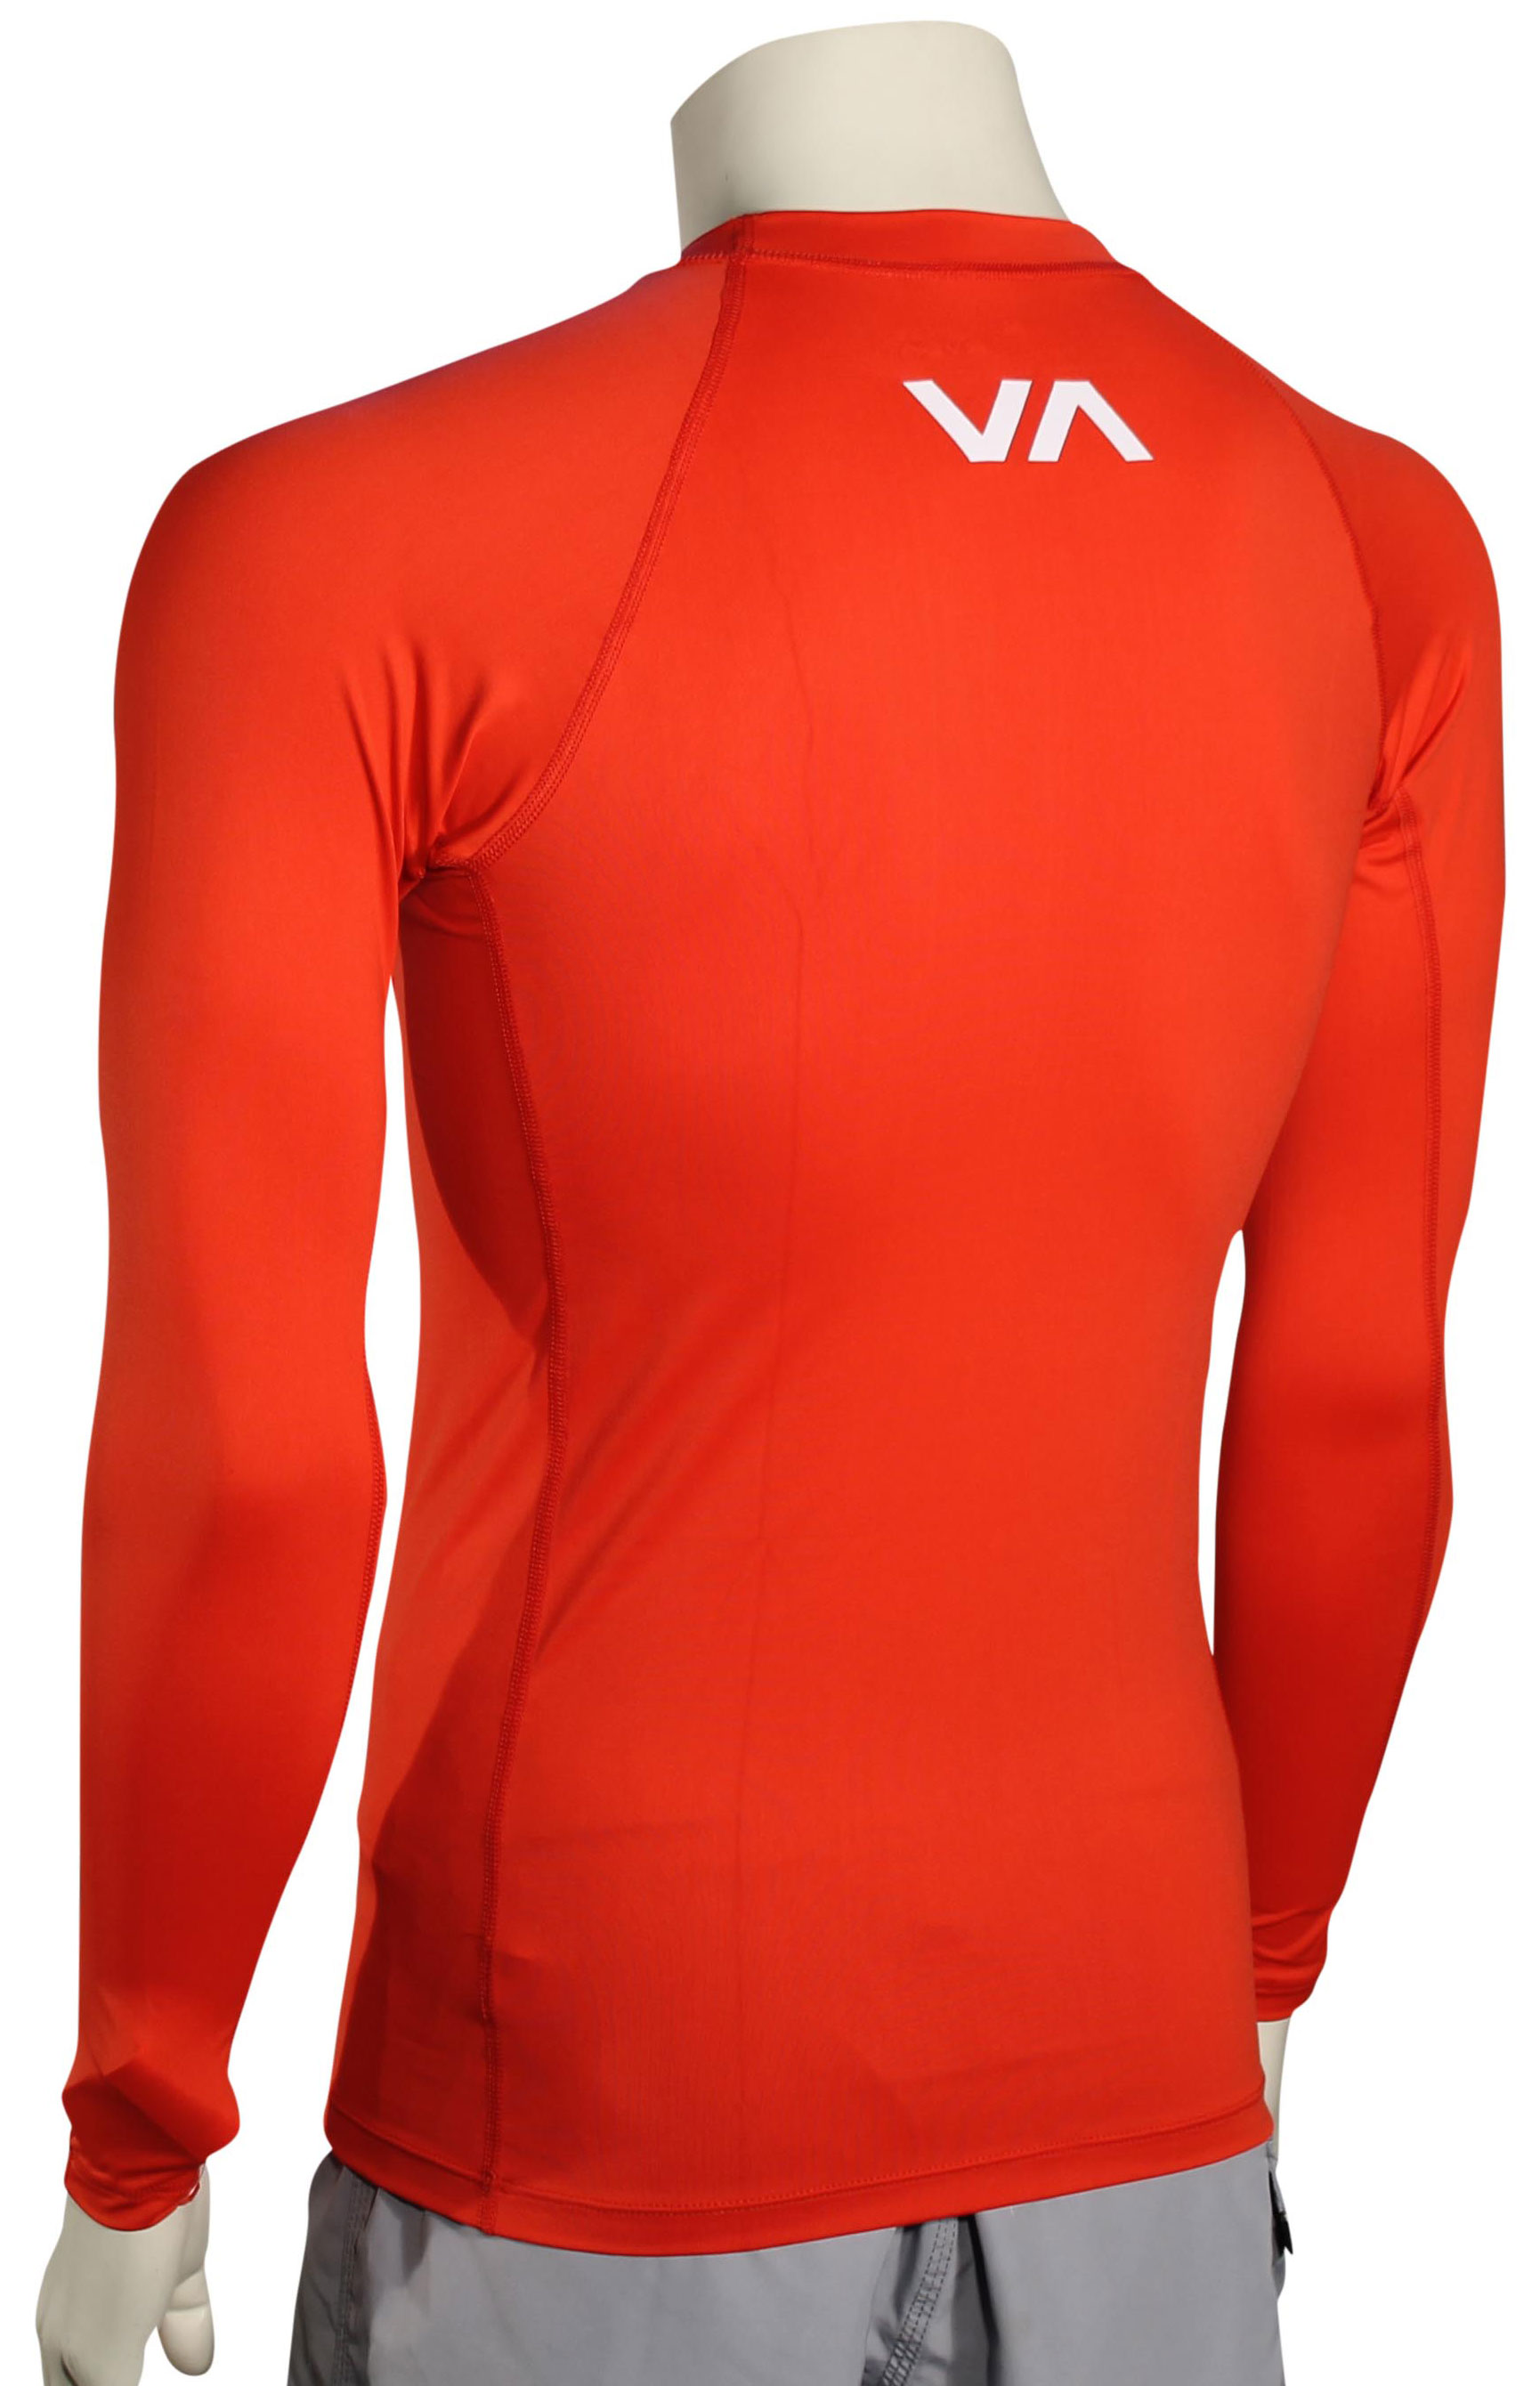 Browse men's rashguards on sale today at the official online store of Quiksilver, the world's leader in surf clothing. Free shipping every day.